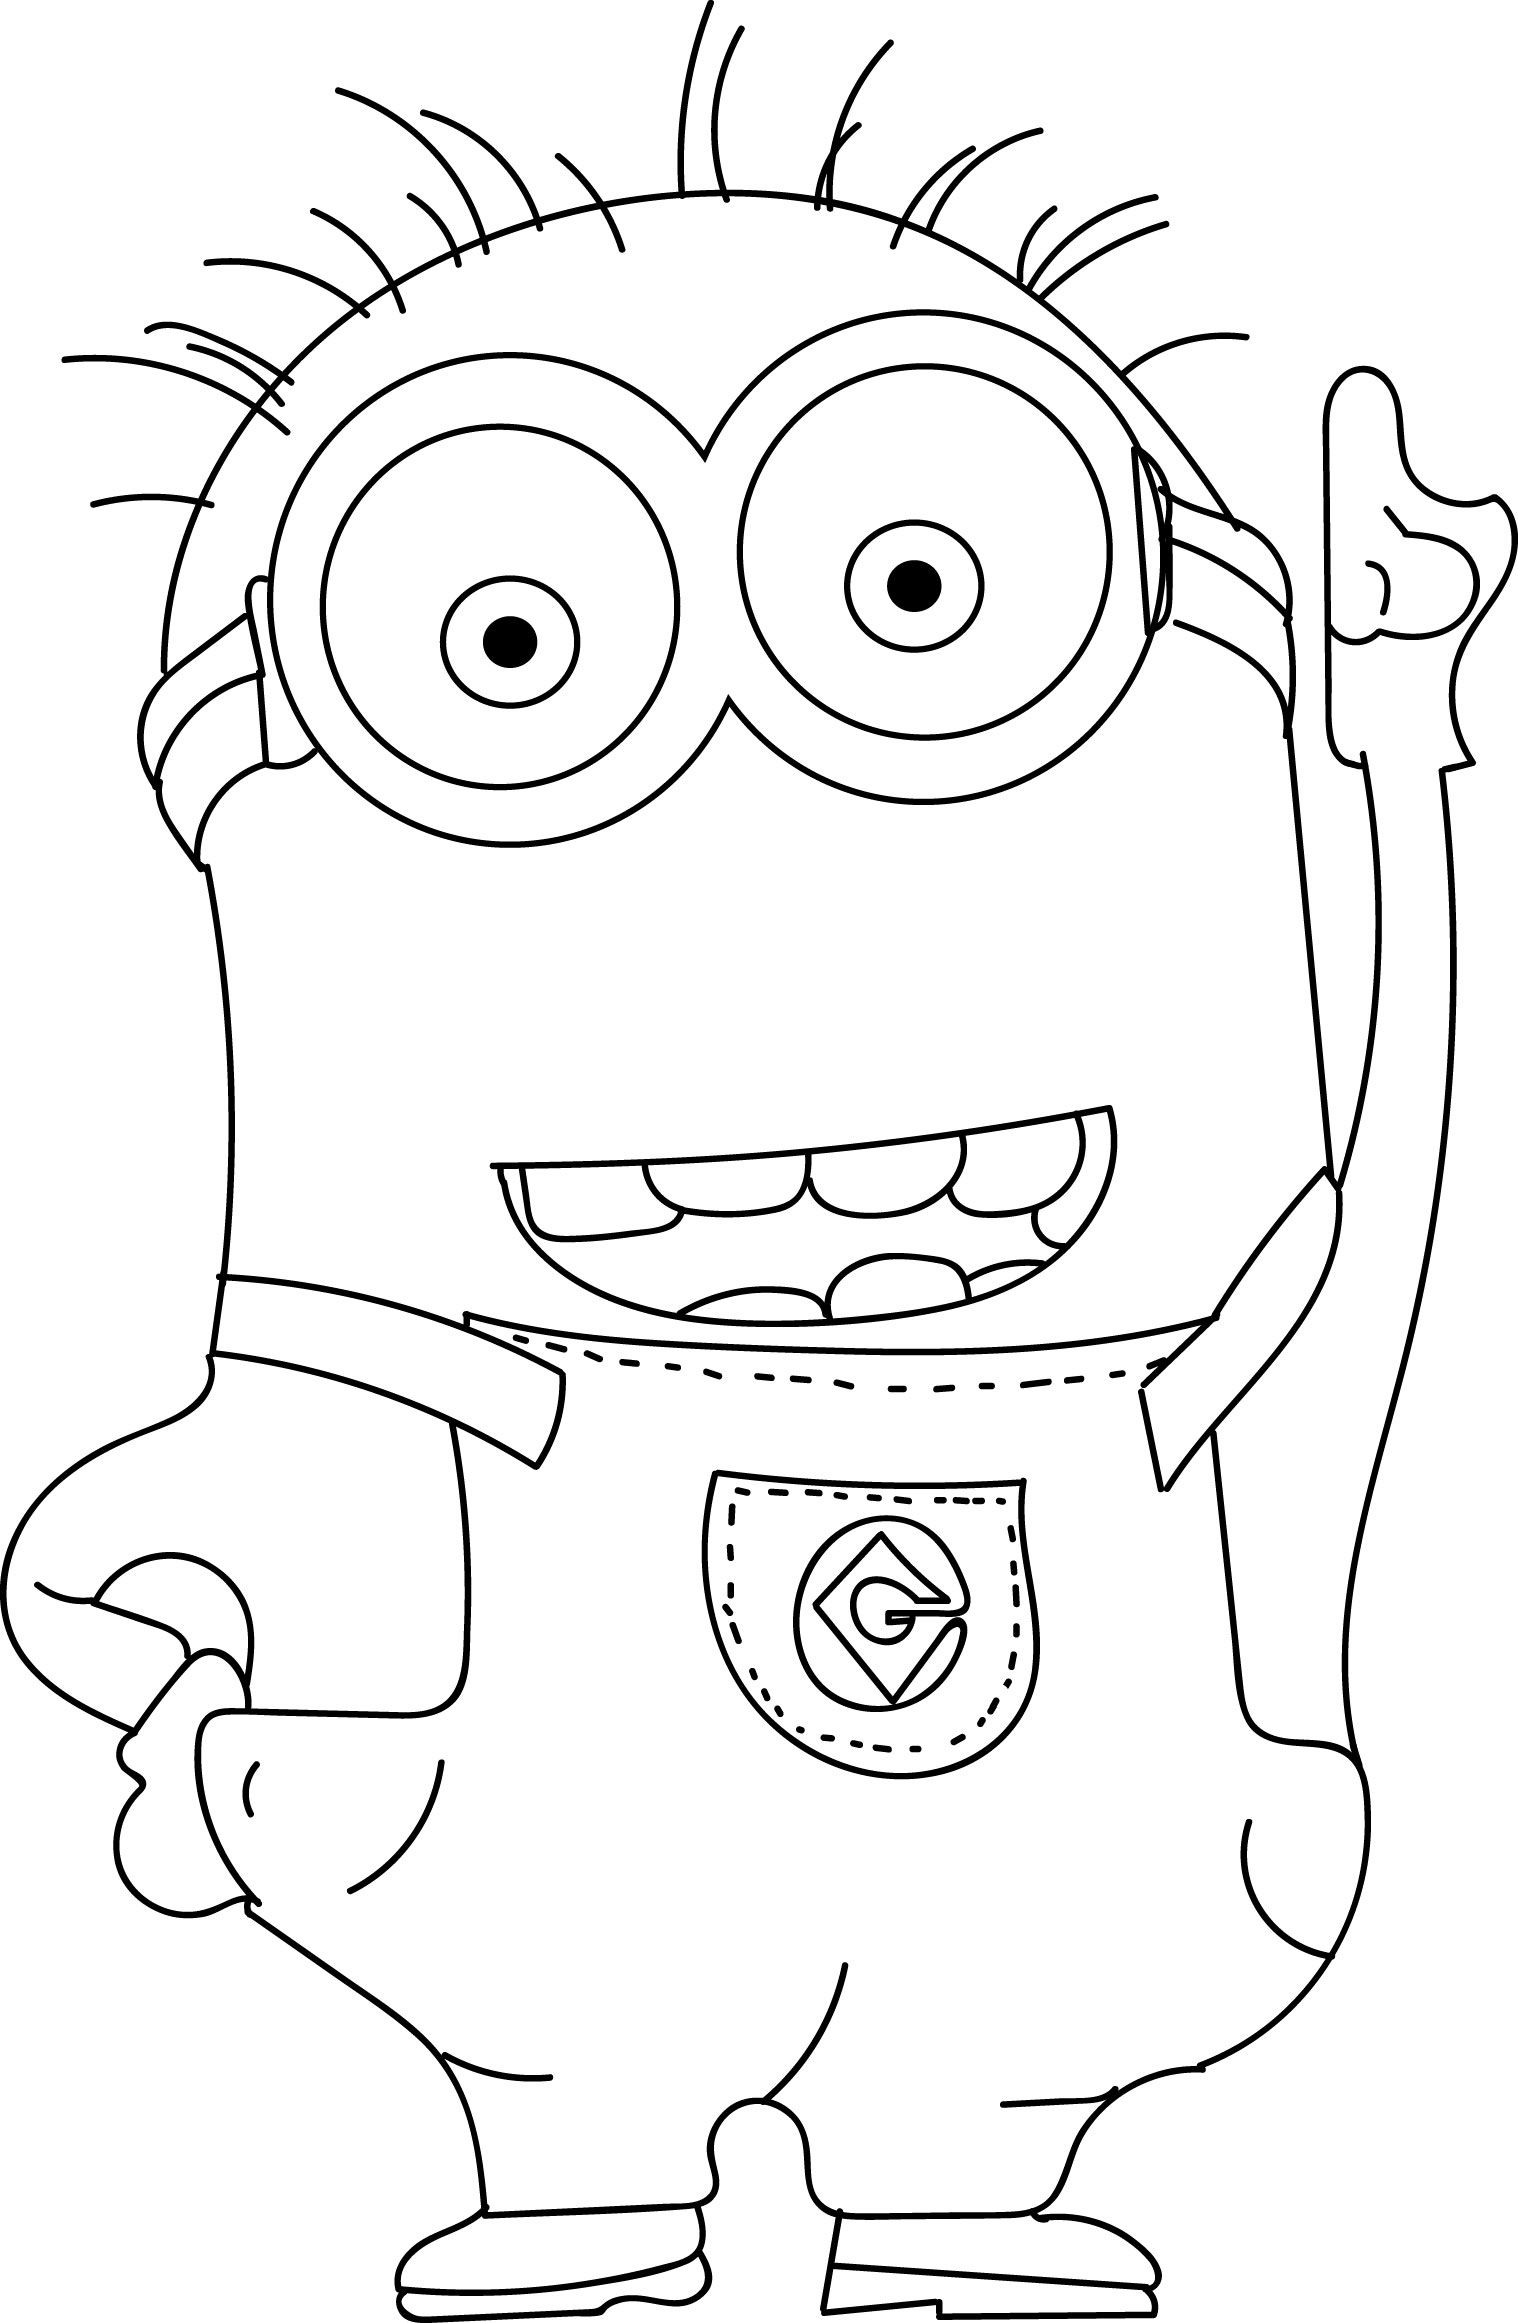 minion colouring page minion coloring pages best coloring pages for kids page colouring minion 1 2